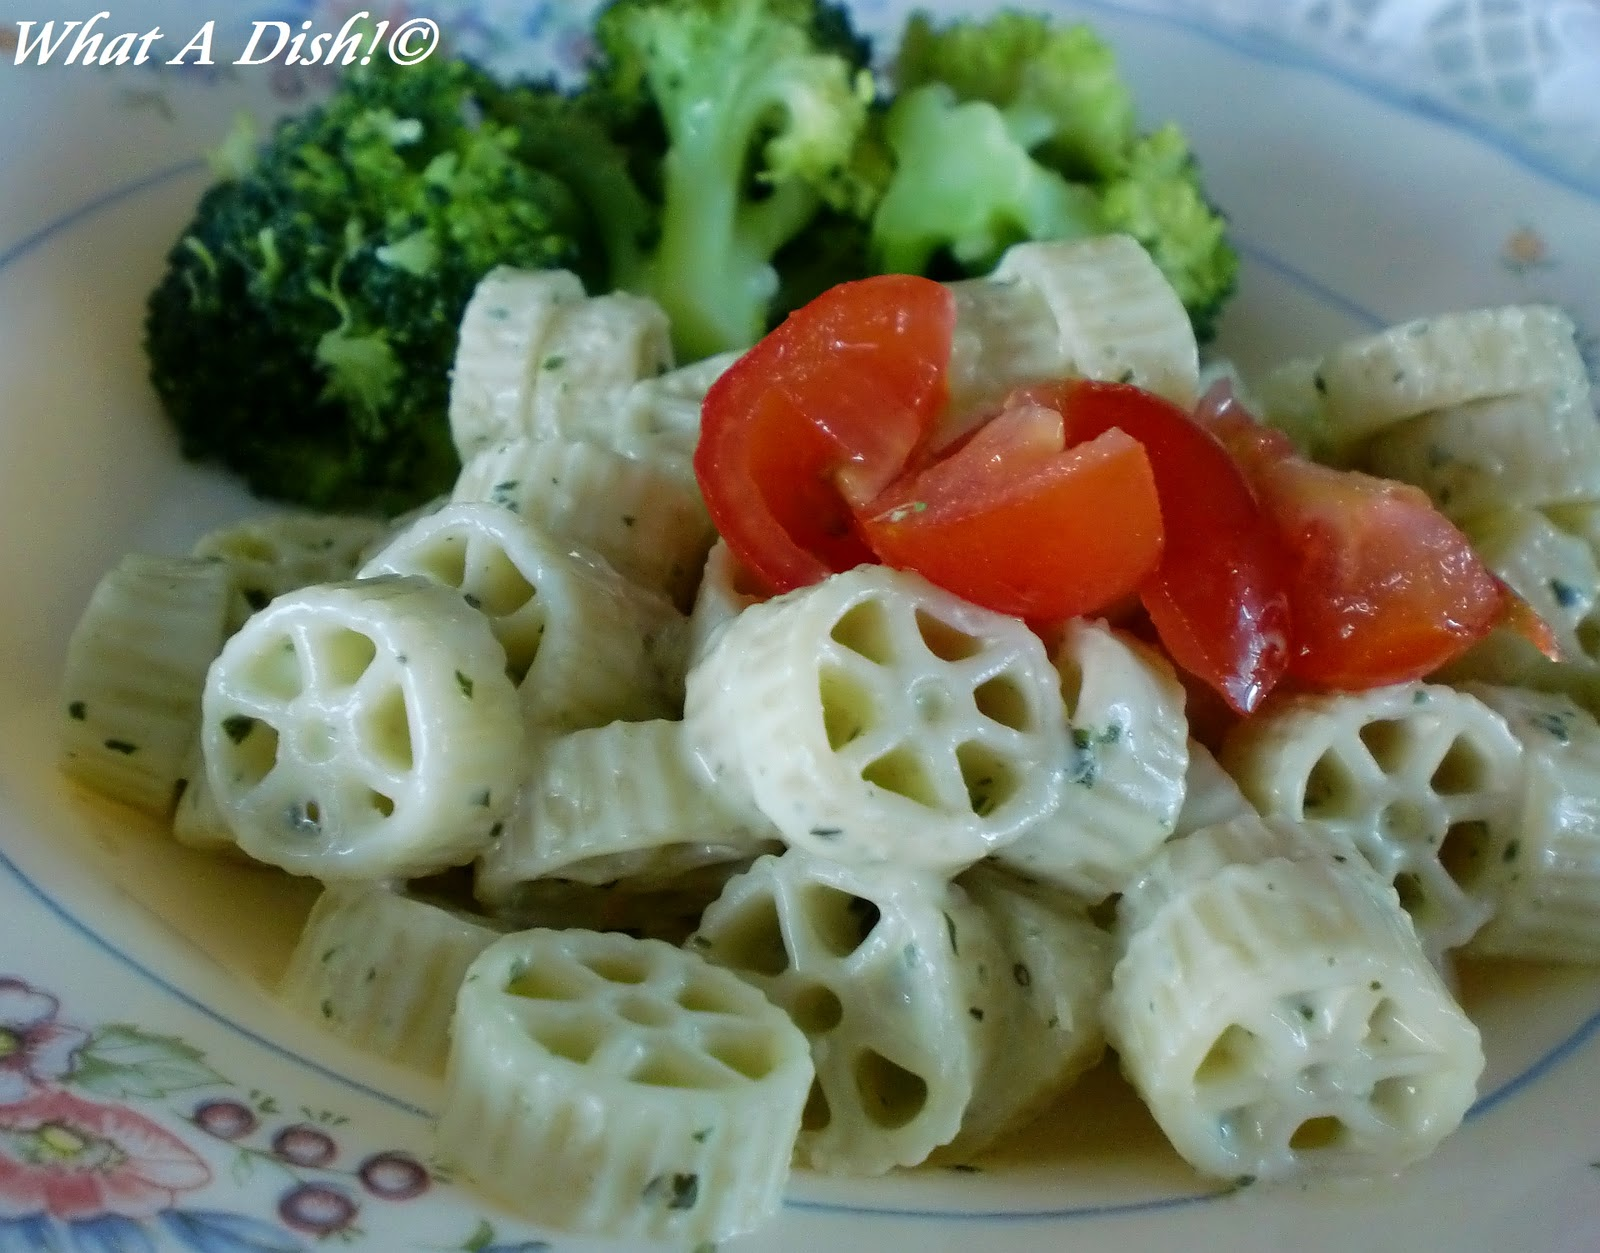 What A Dish!: Creamy Pesto Pasta